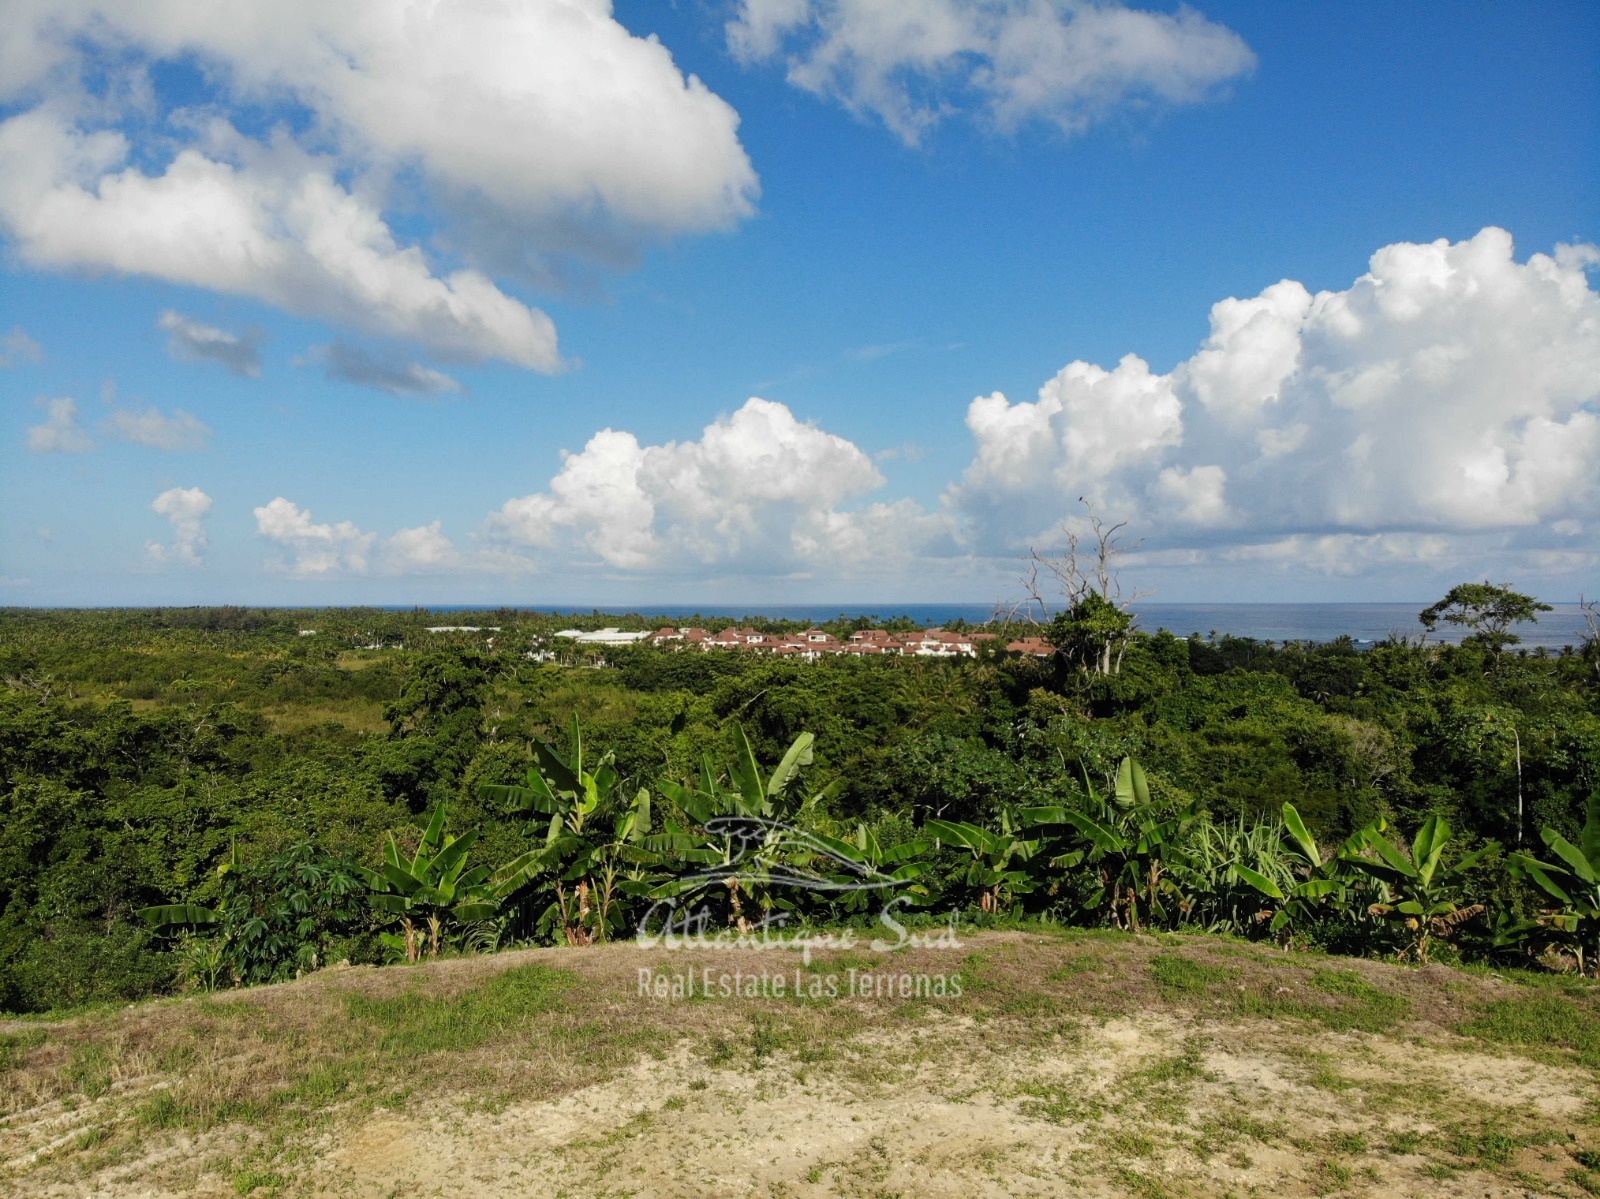 Land Lots for sale las terrenas samana14.jpeg